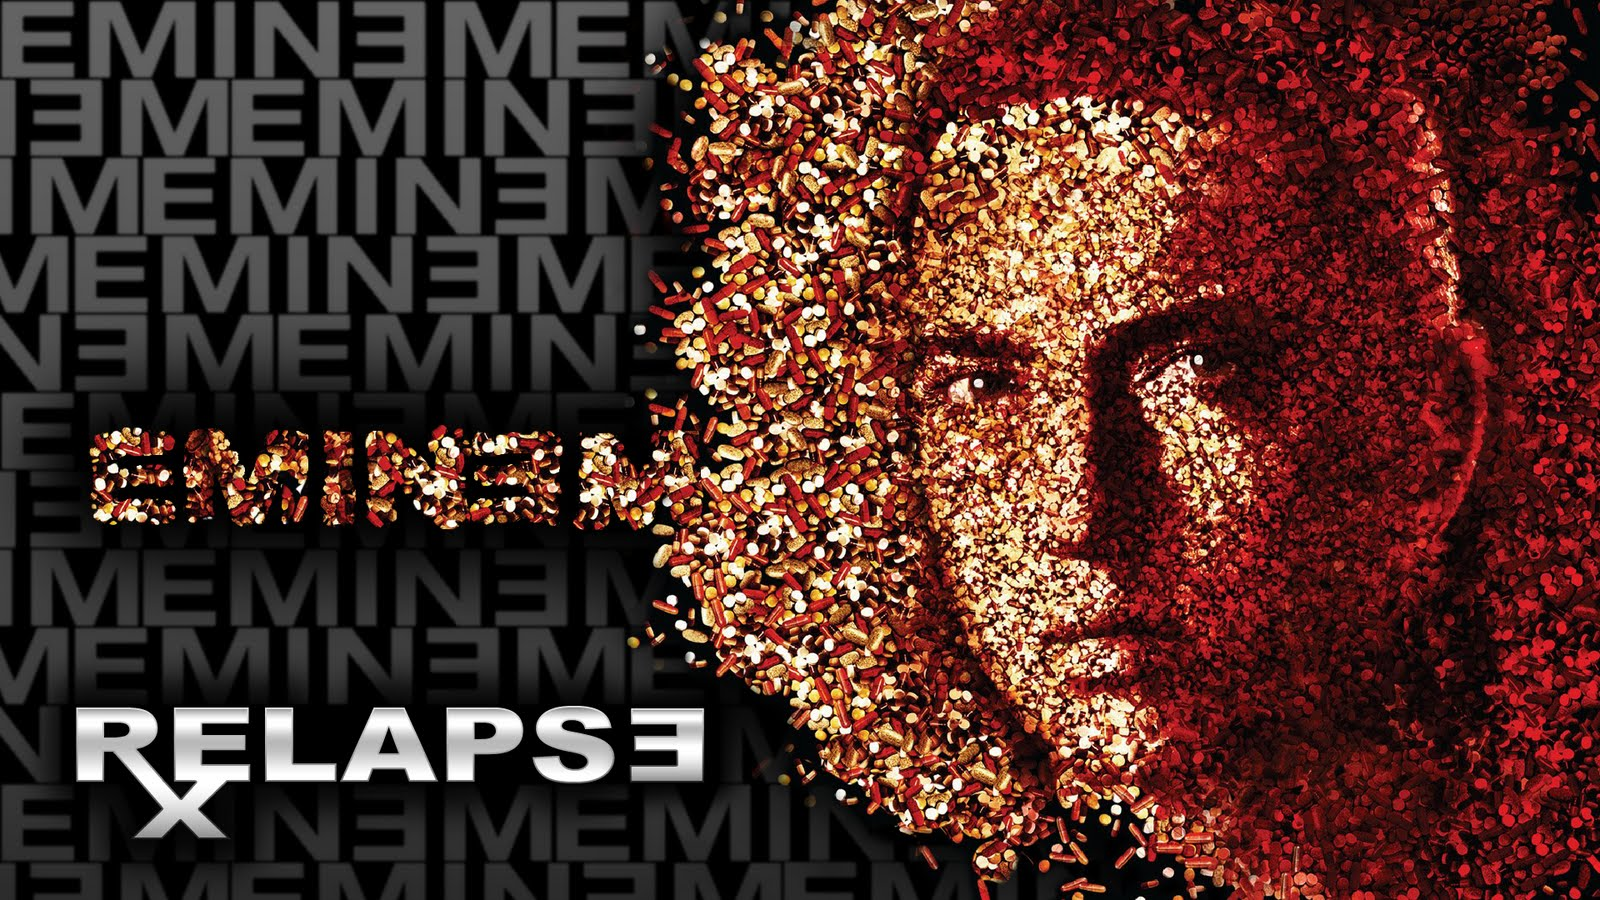 relapse eminem computer - photo #2